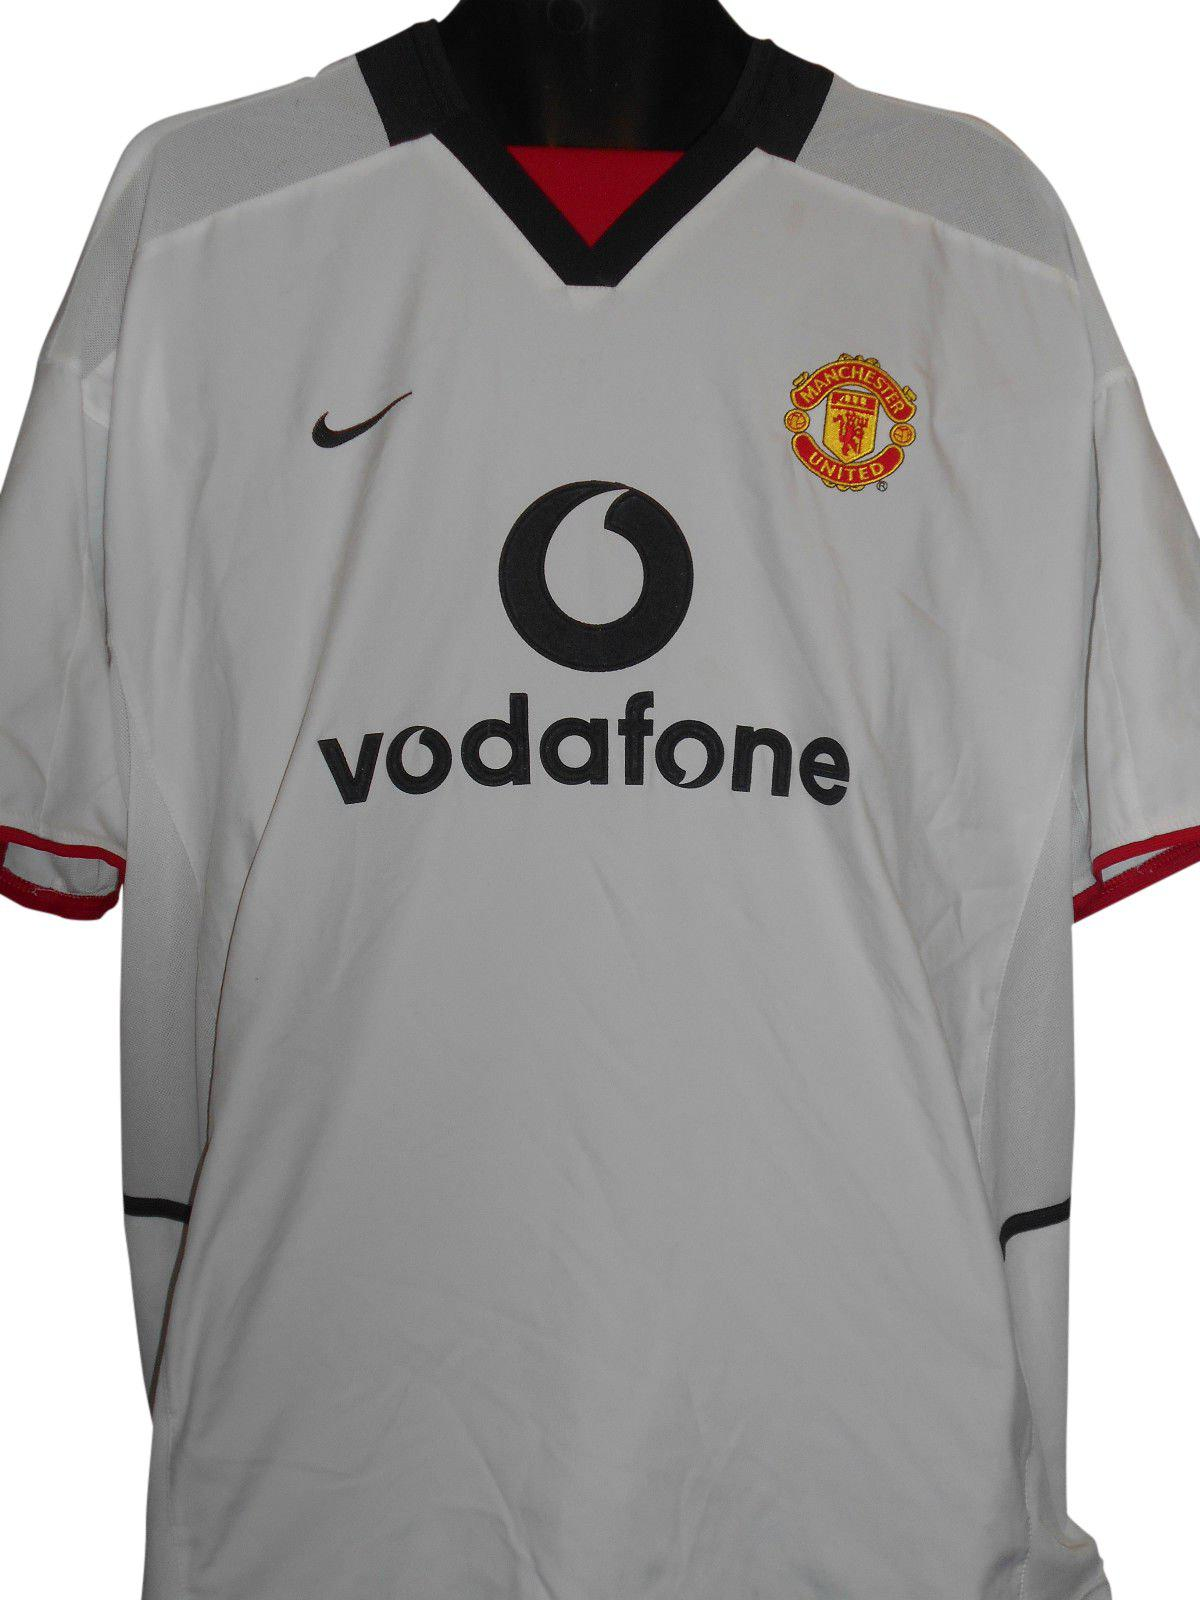 Buy used Vintage Manchester United football shirts online - Loads ...